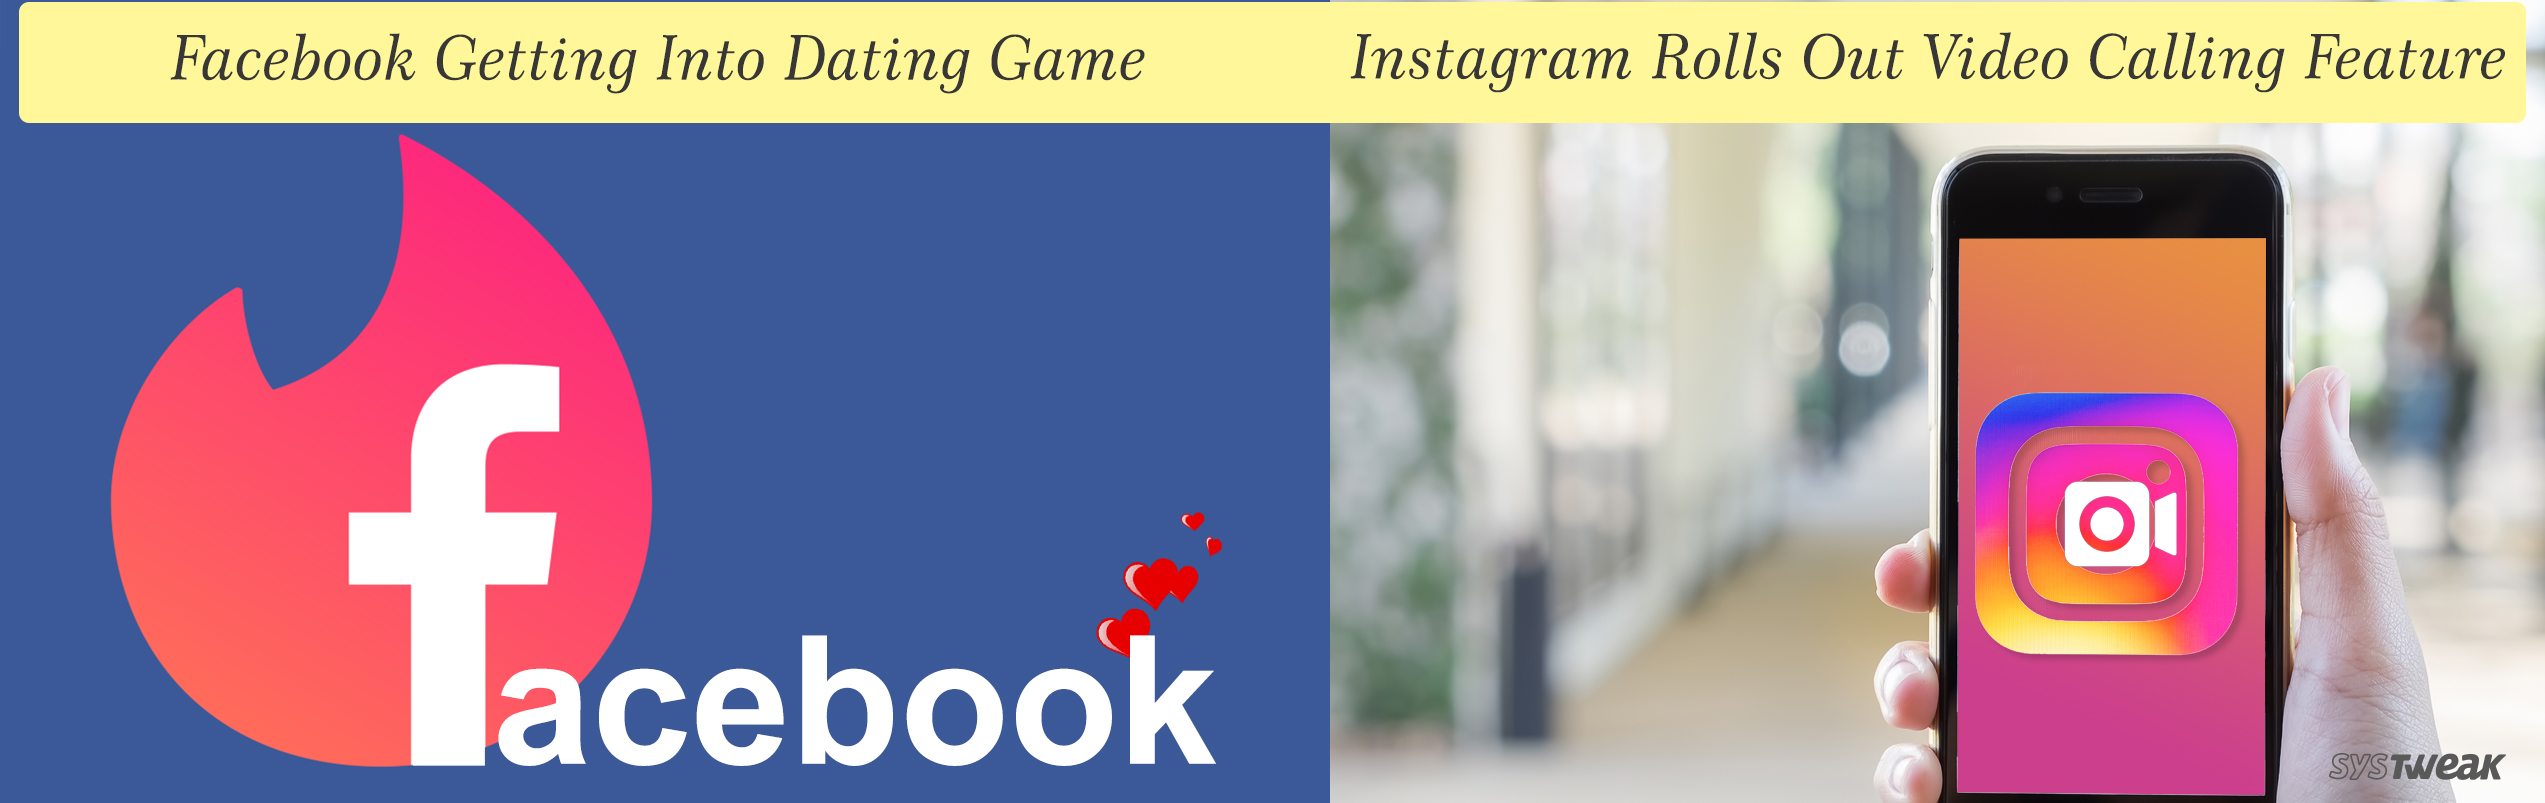 NEWSLETTER: FACEBOOK ANNOUNCES DATING FEATURE AND INSTAGRAM ROLLS OUT VIDEO CALLING